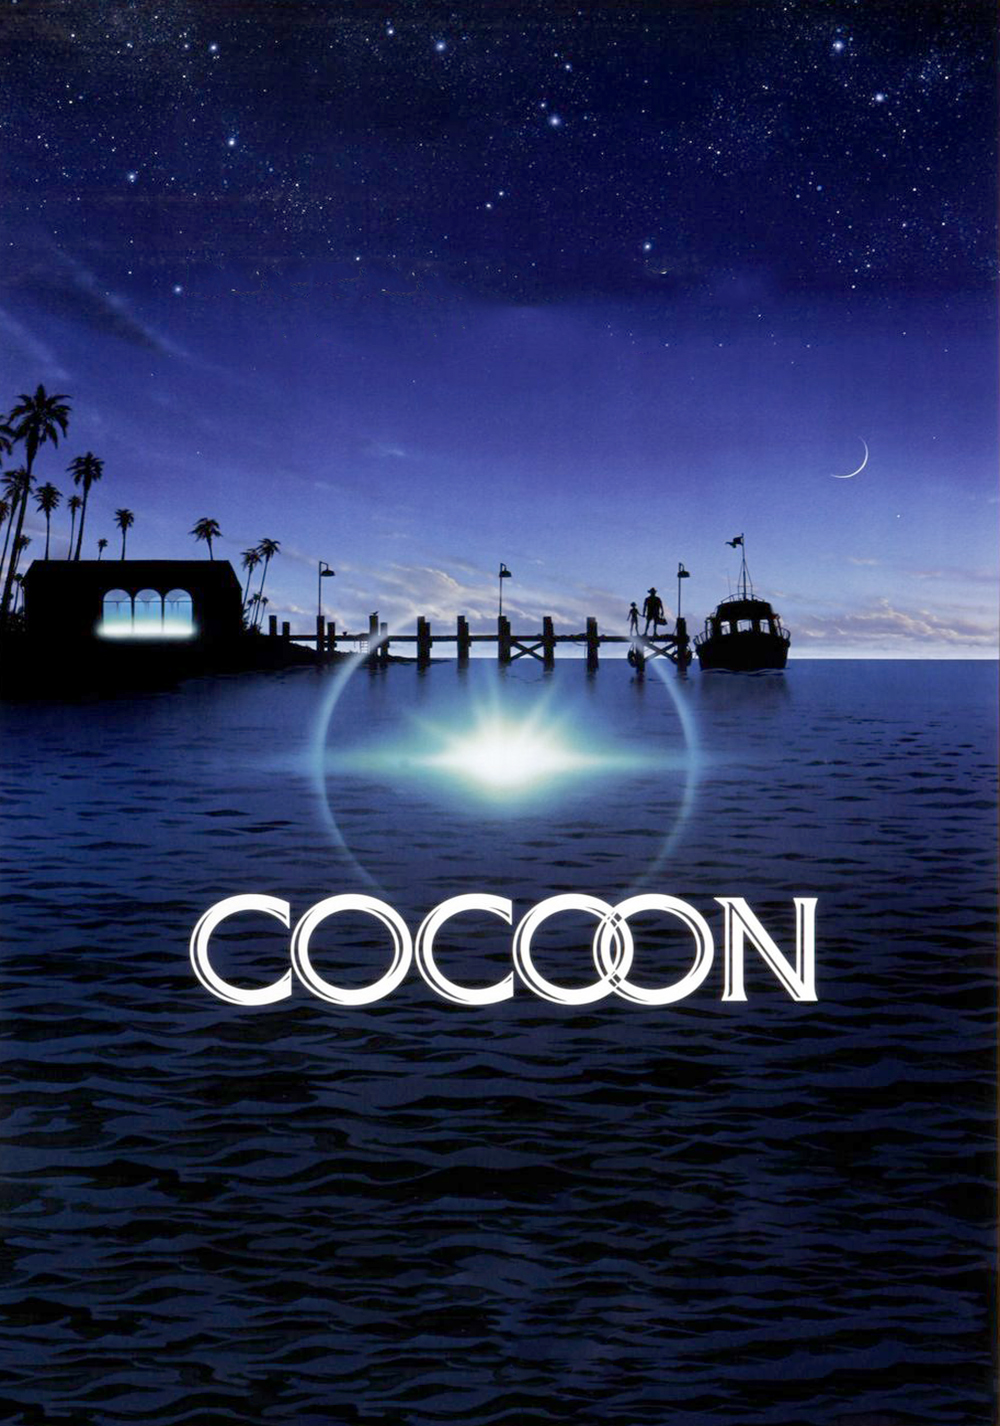 cocoon-54a0436aebccd